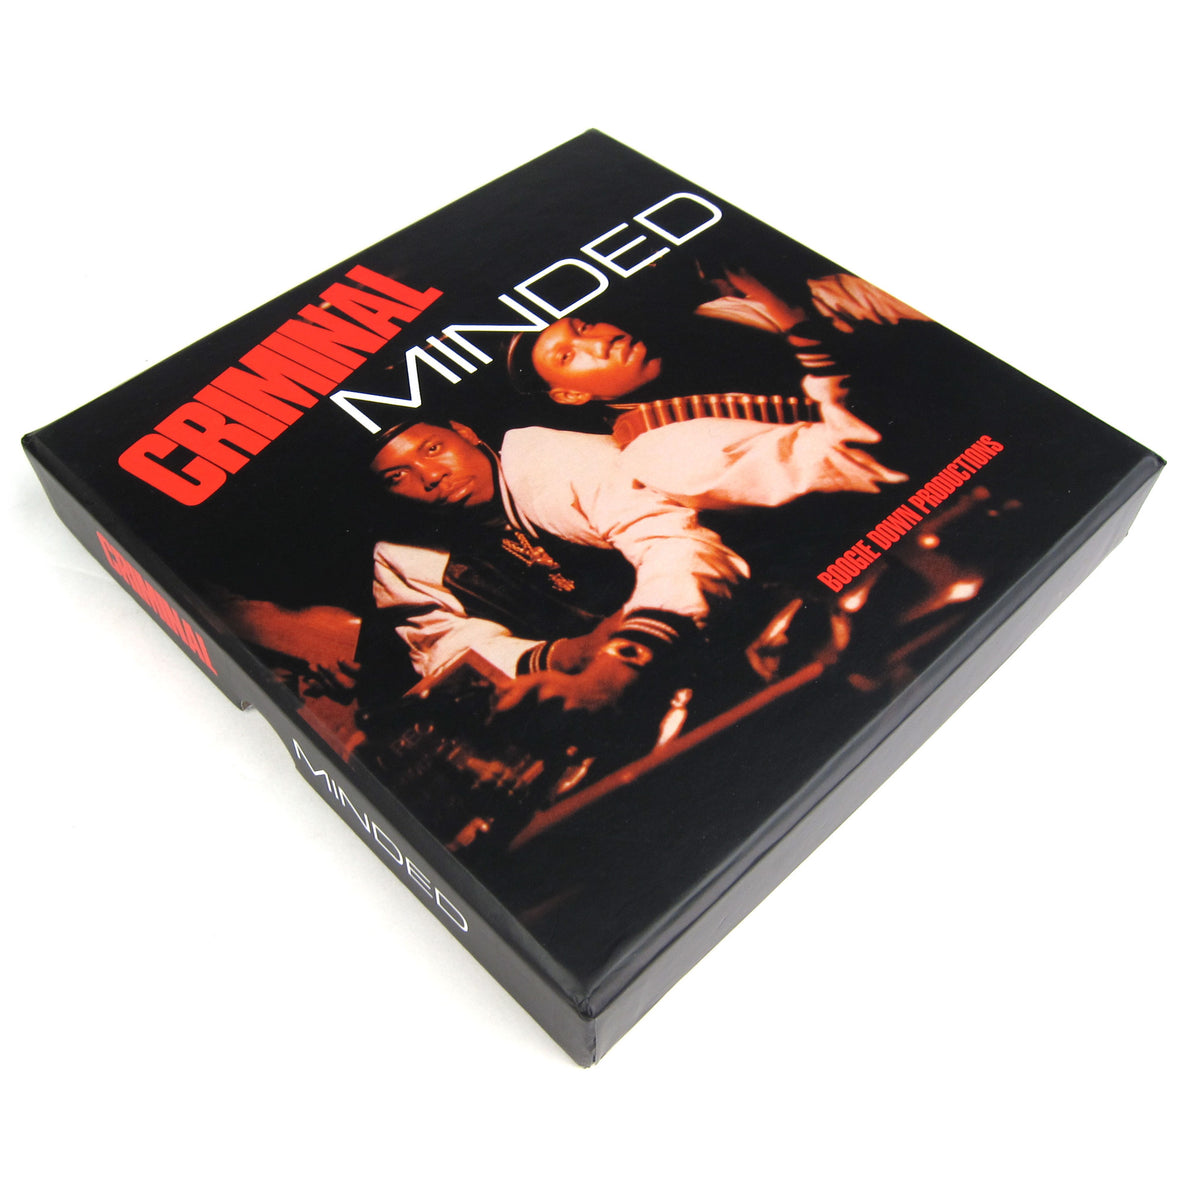 "Boogie Down Productions: Criminal Minded 7"" Vinyl Box Set box"